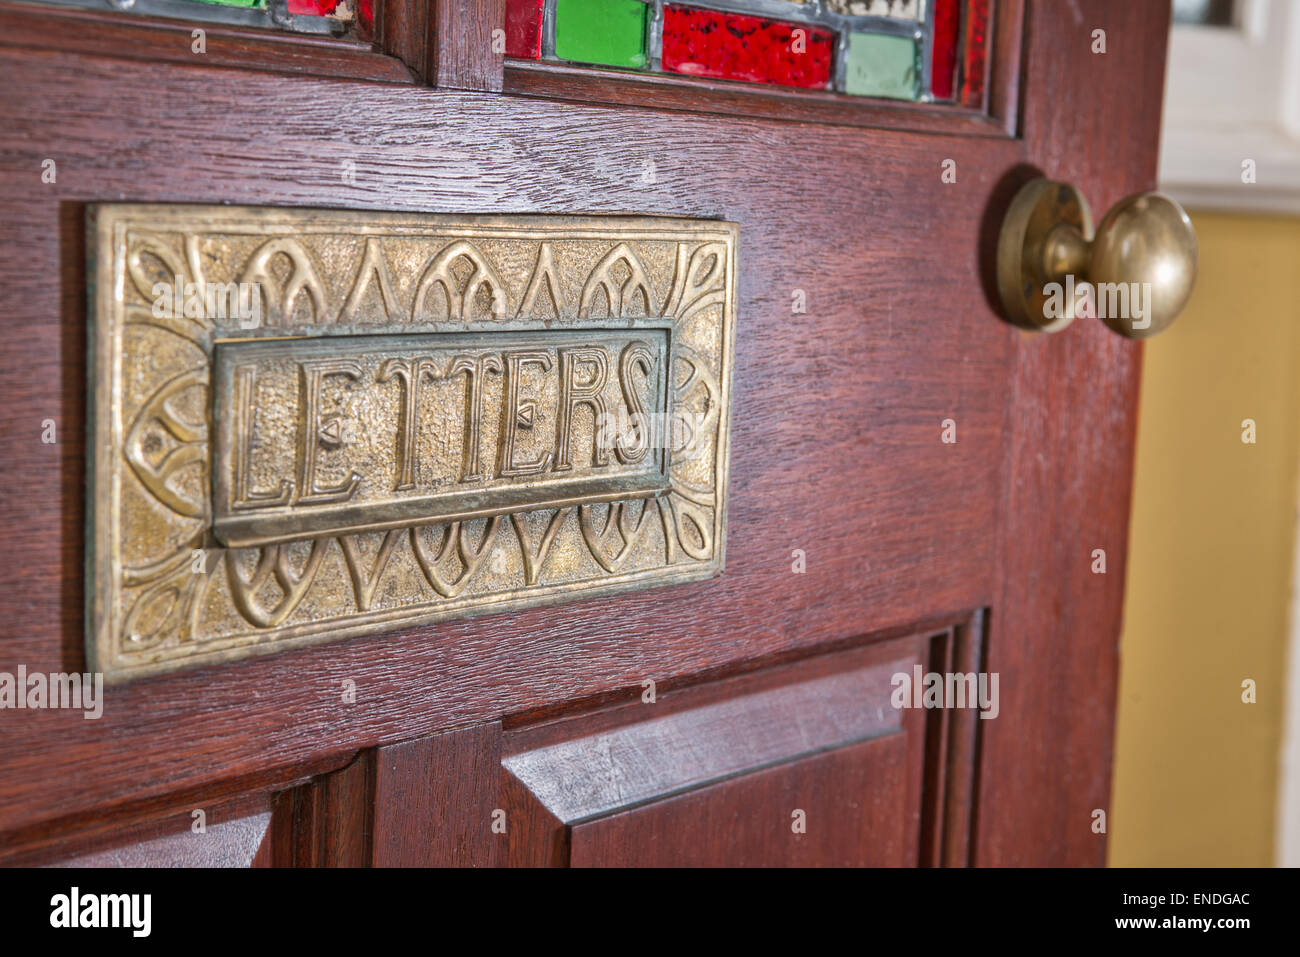 A Period letterbox with the word letters written across the flap, mounted in the front door of a home - Stock Image